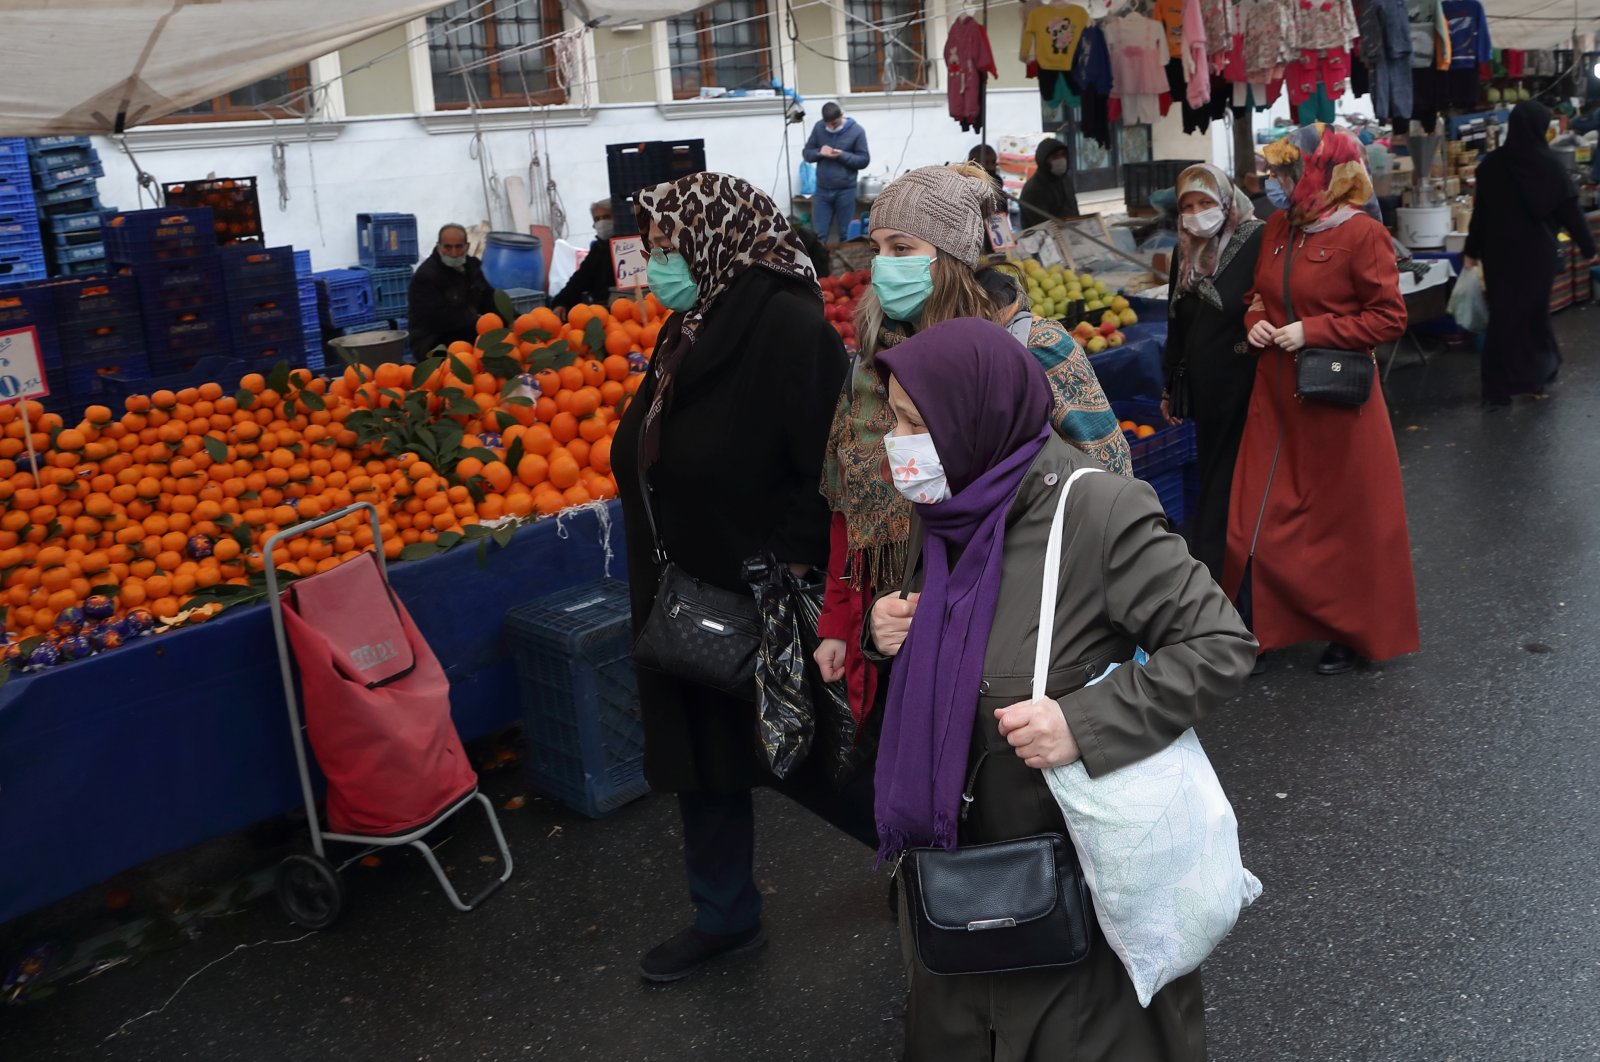 People shop at a local market in the Fatih district of Istanbul, Turkey, Jan. 13, 2021. (Reuters Photo)